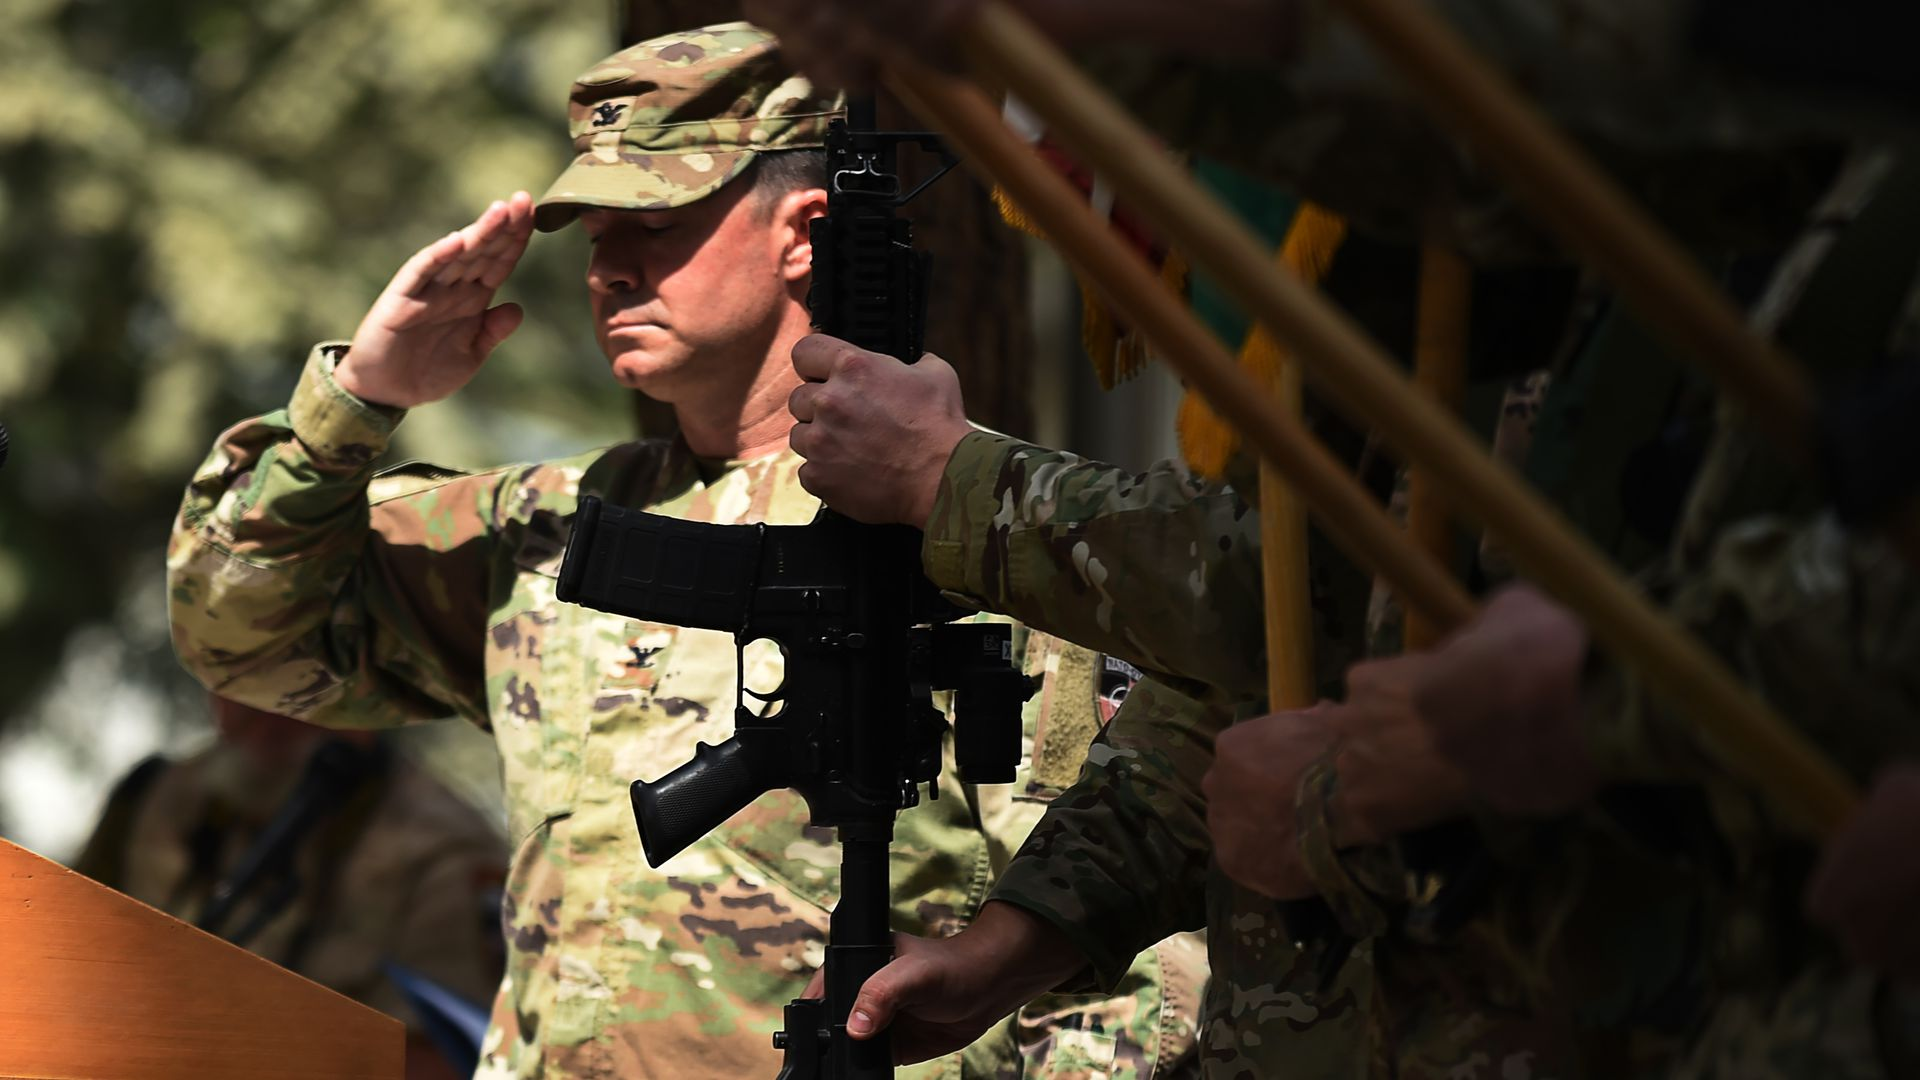 U.S. soldier salutes, behind a silhouette of a gun.